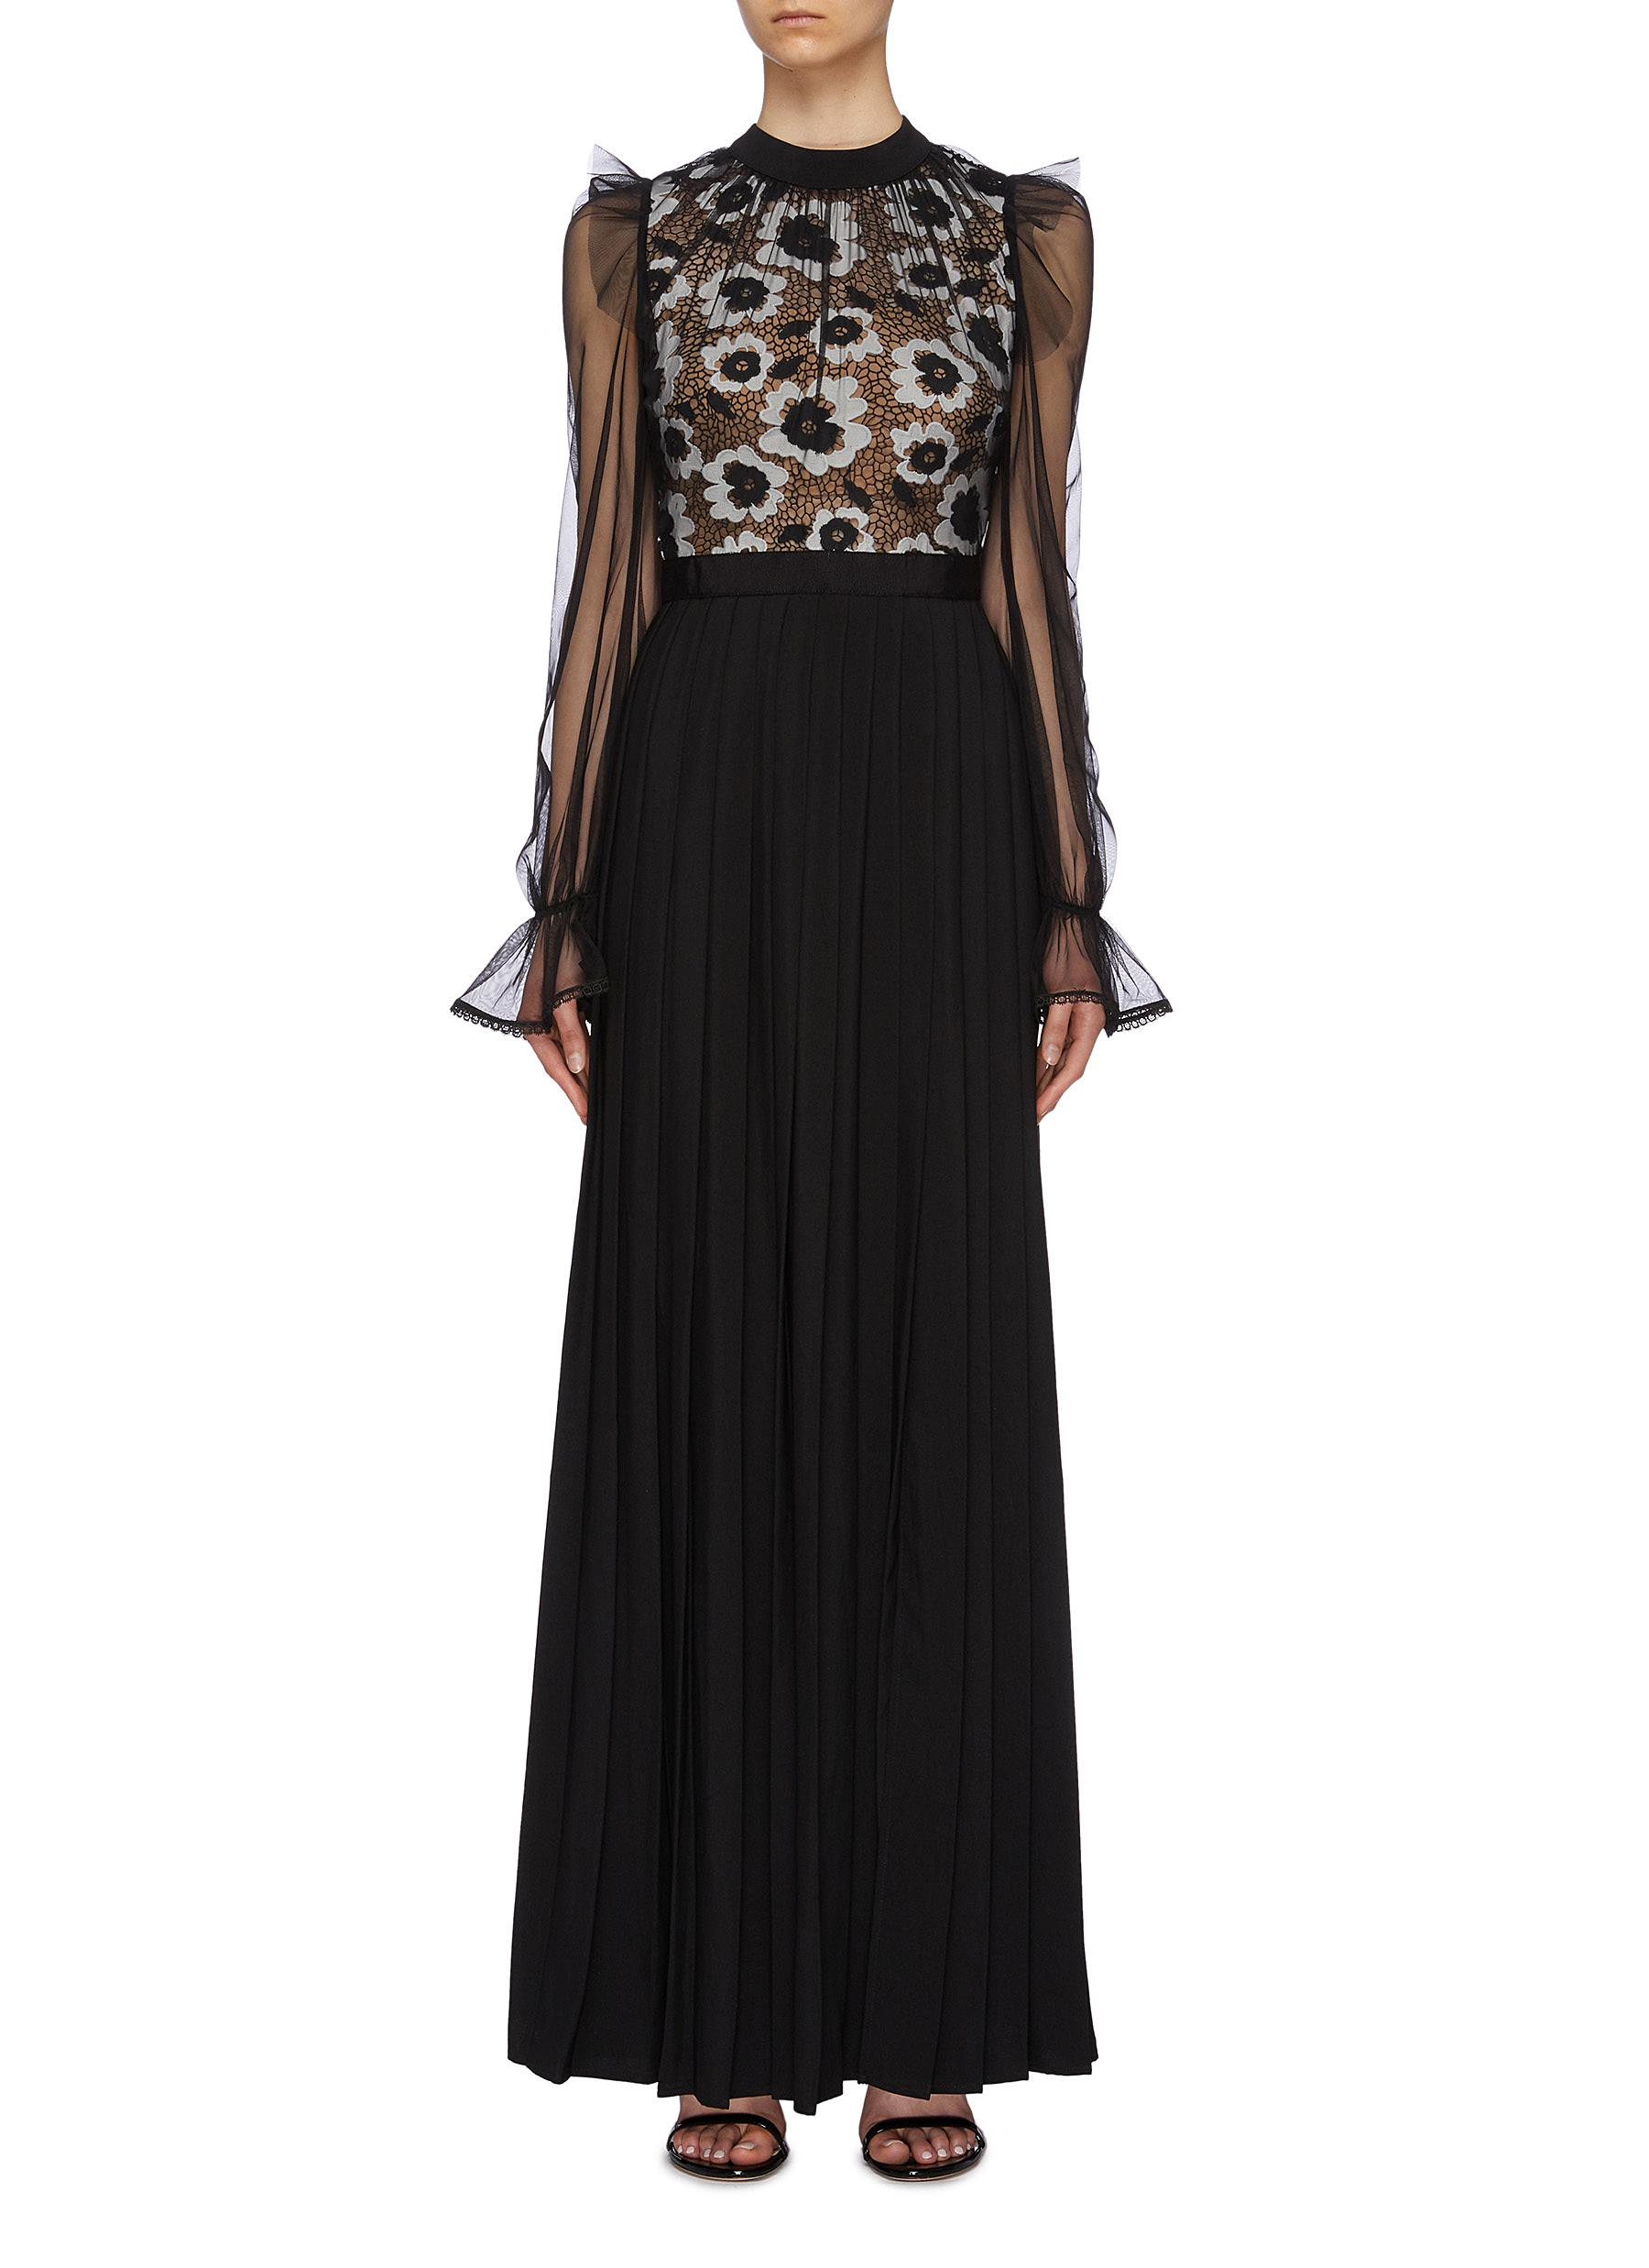 Organdy overlay floral guipure lace panel maxi dress by Self-Portrait